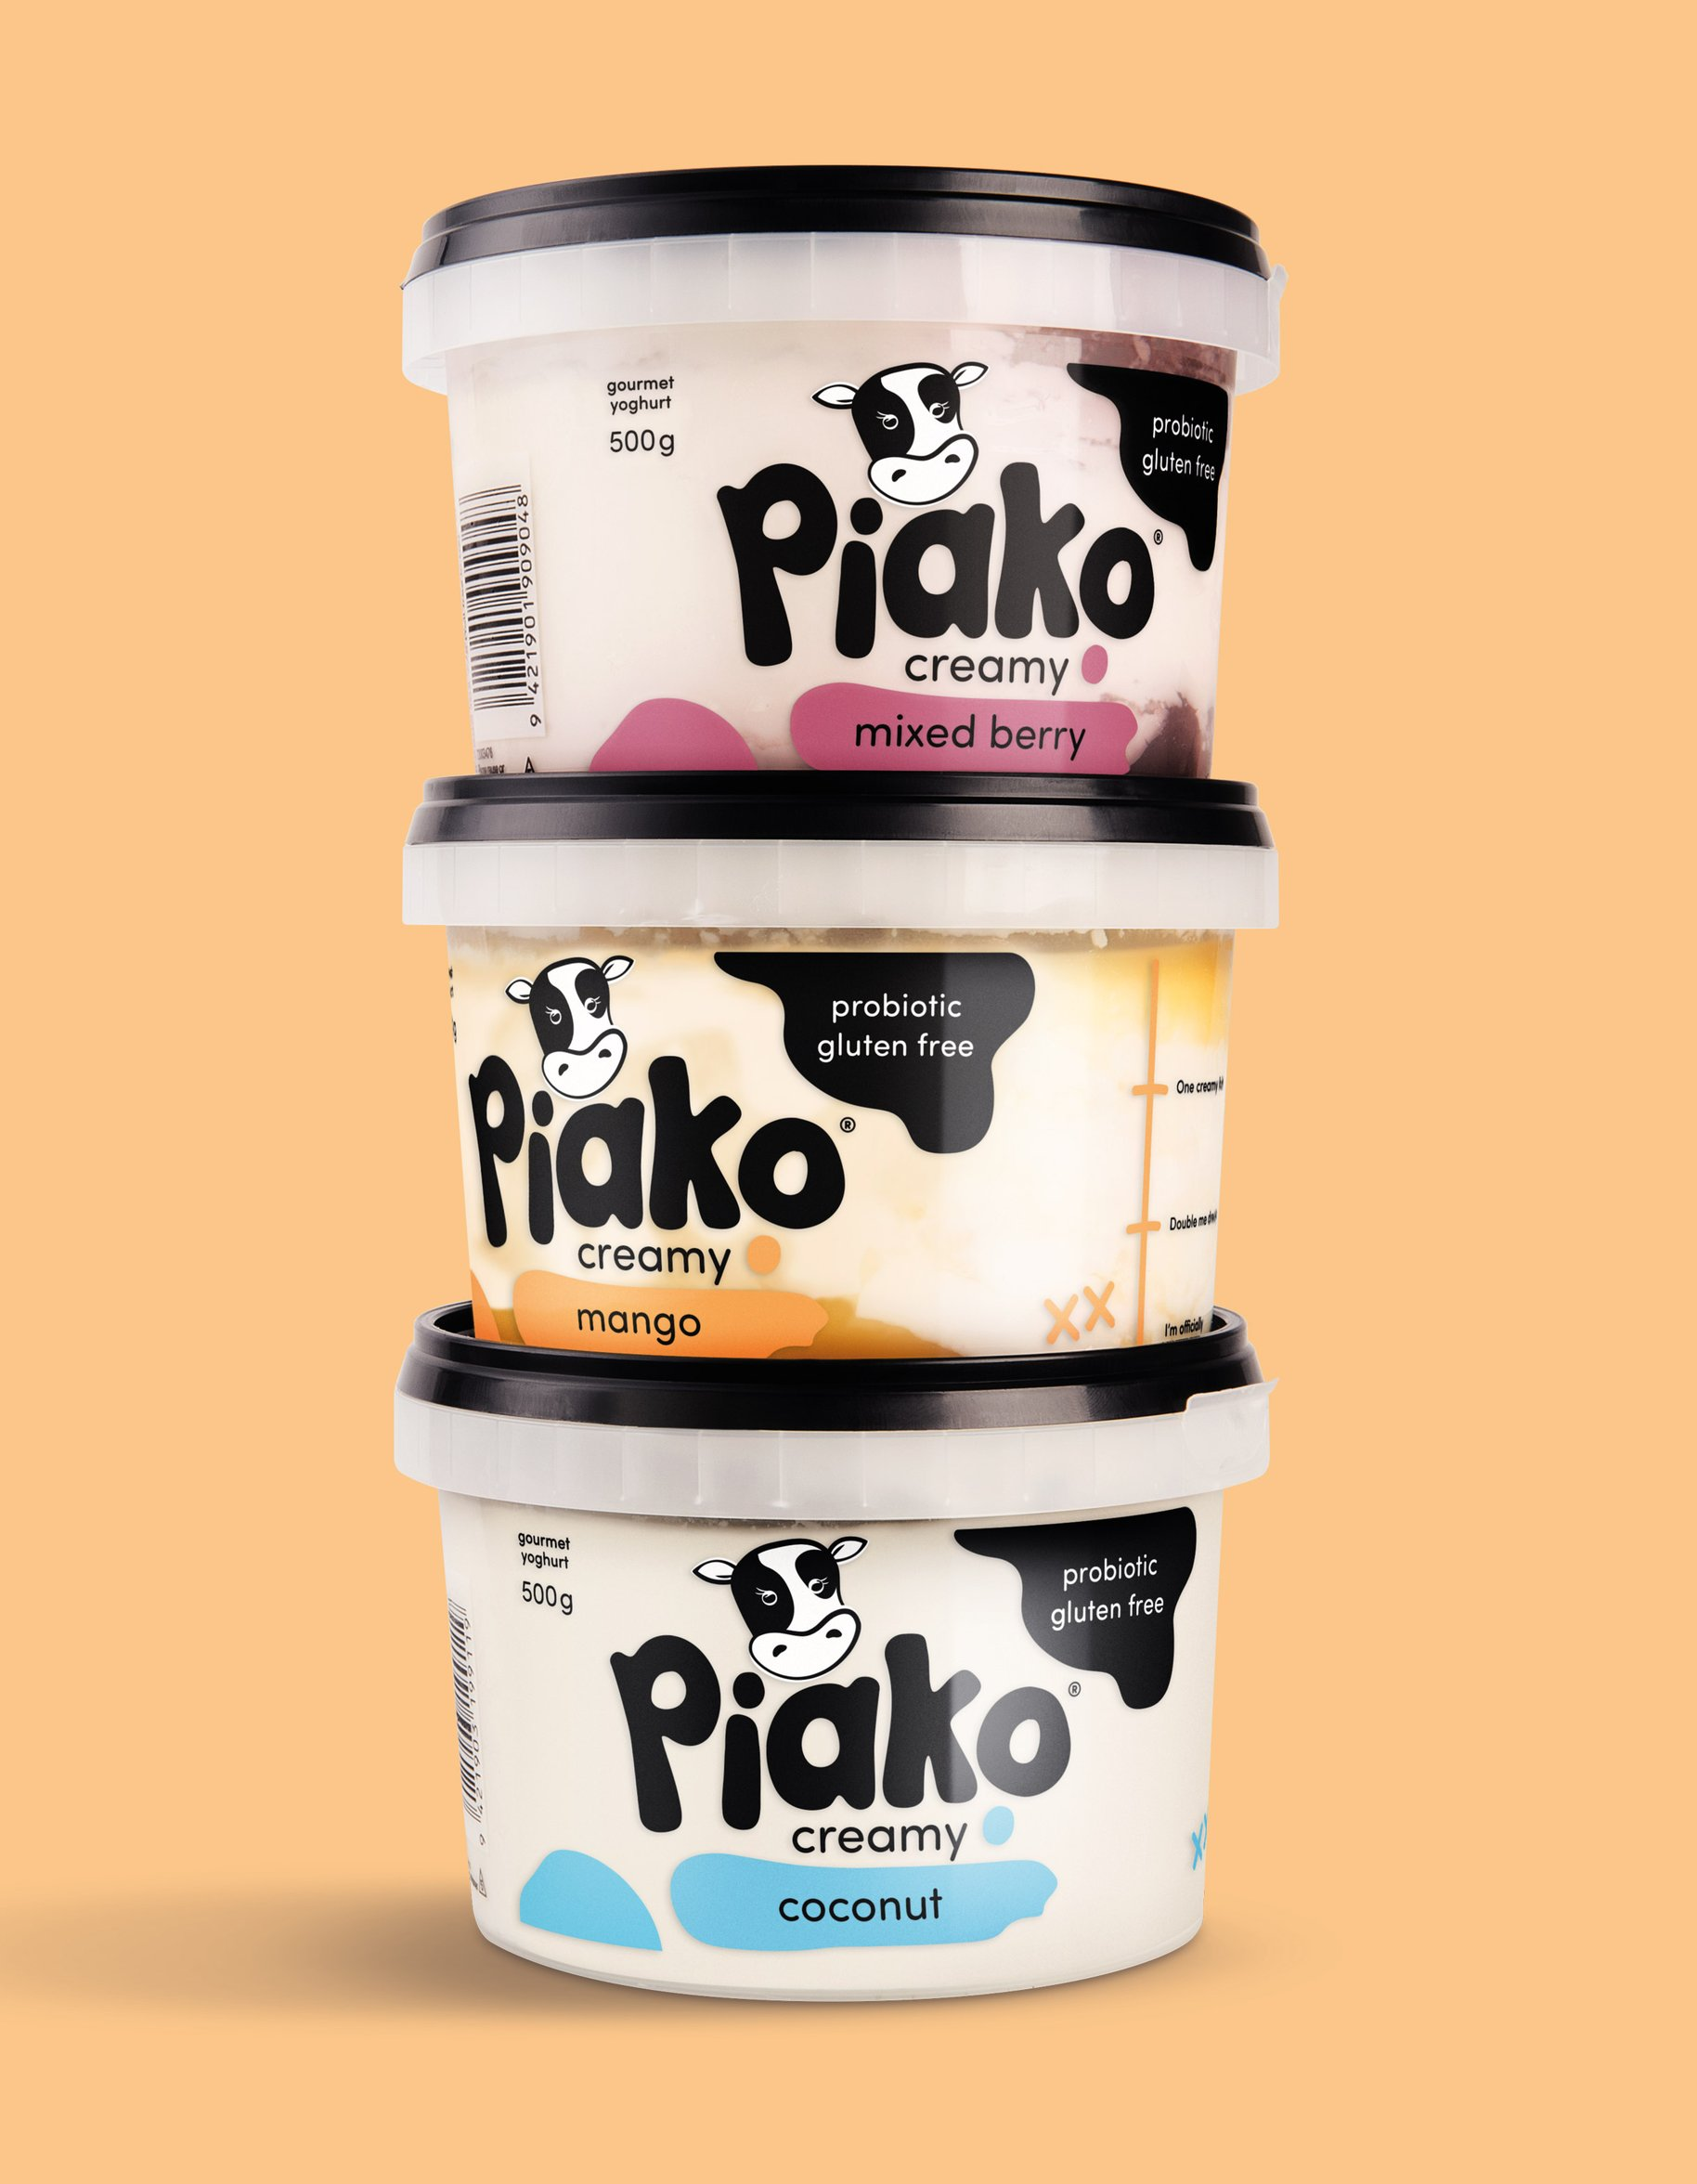 Piako Creamy yoghurt packaging coconut mango mixed berry